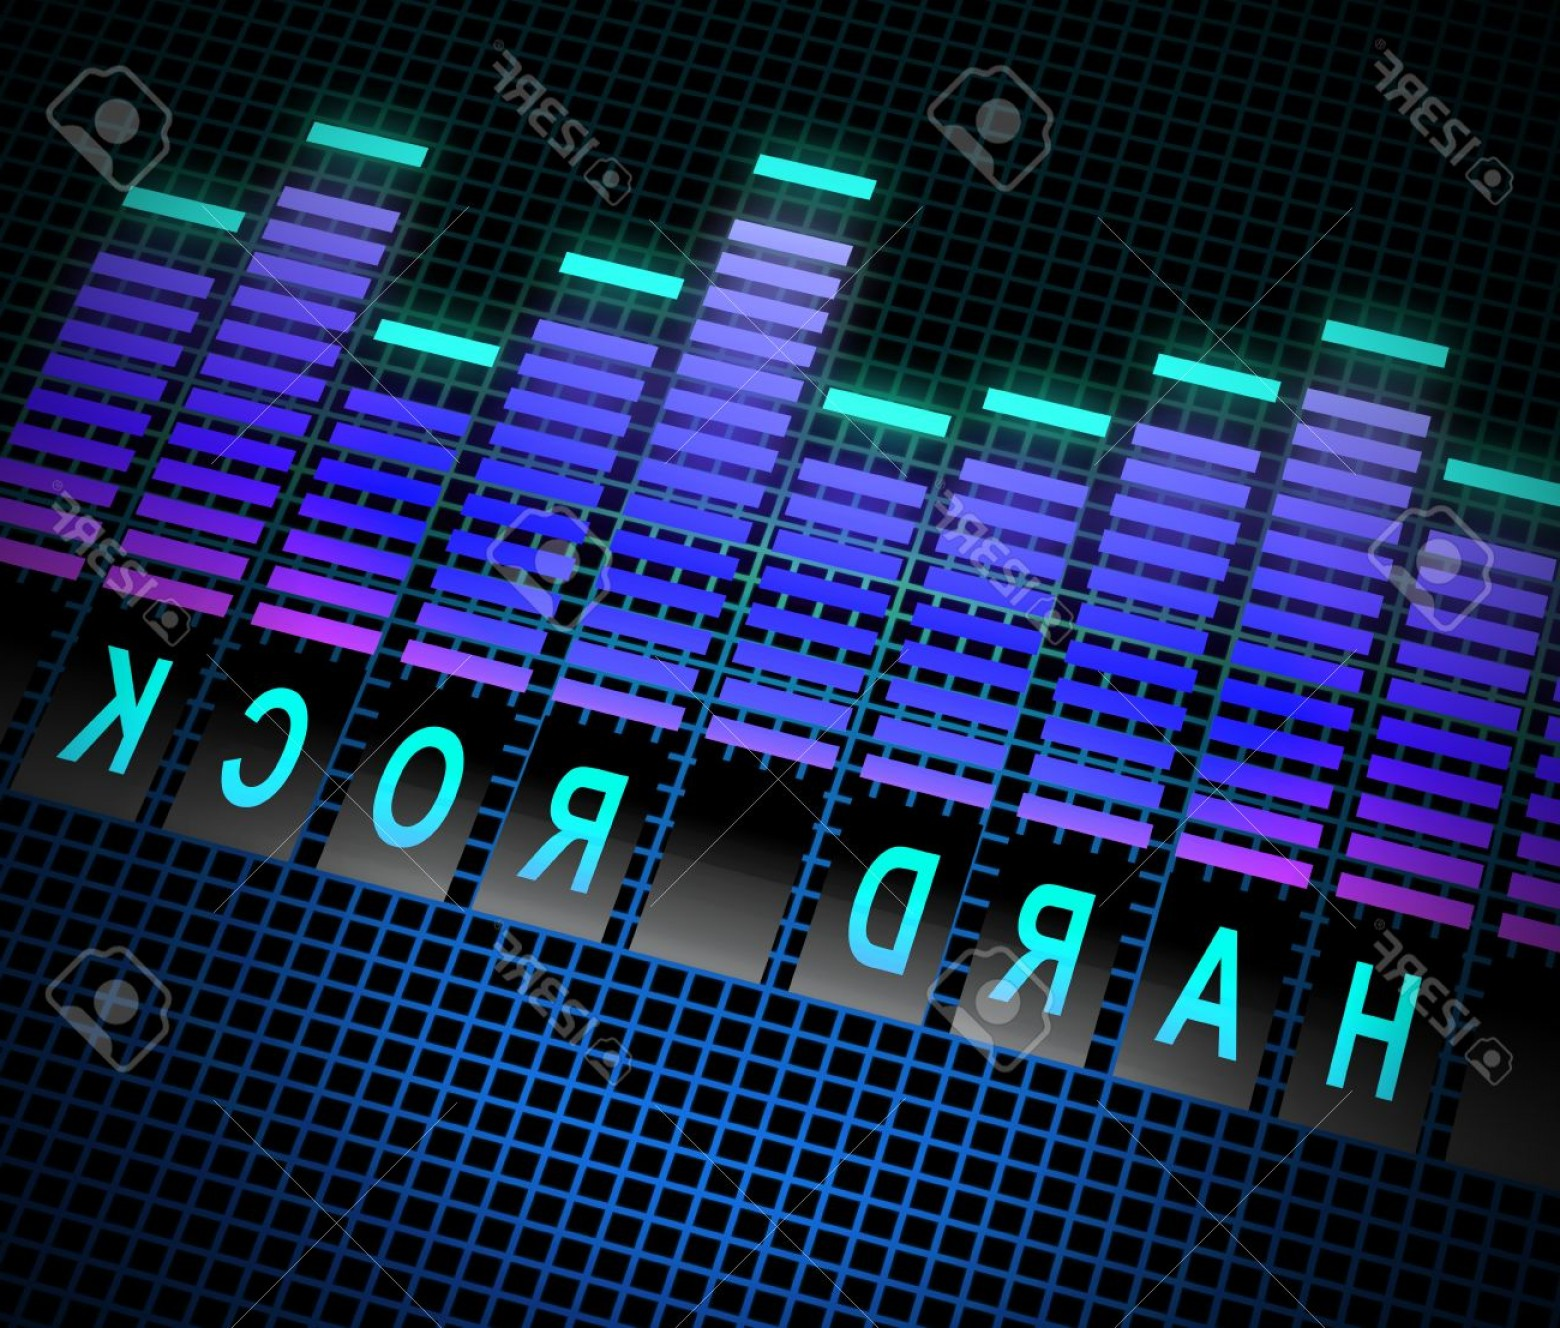 Rock Band Equalizer Vector: Photostock Illustration Illustration Depicting Graphic Equalizer Levels With A Hard Rock Concept